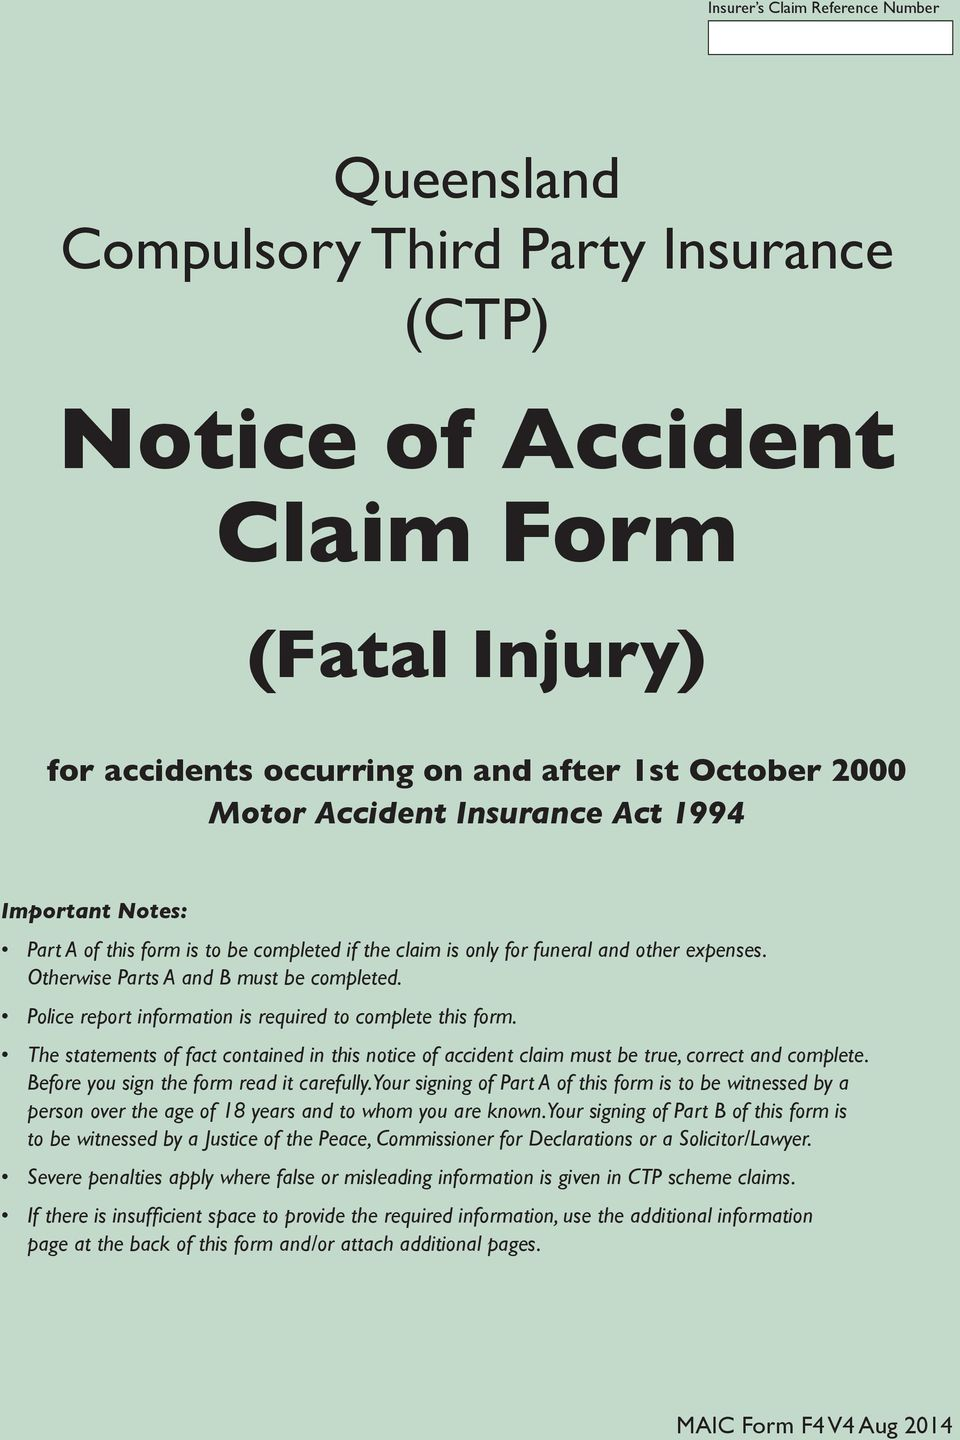 Police report information is required to complete this form. The statements of fact contained in this notice of accident claim must be true, correct and complete.